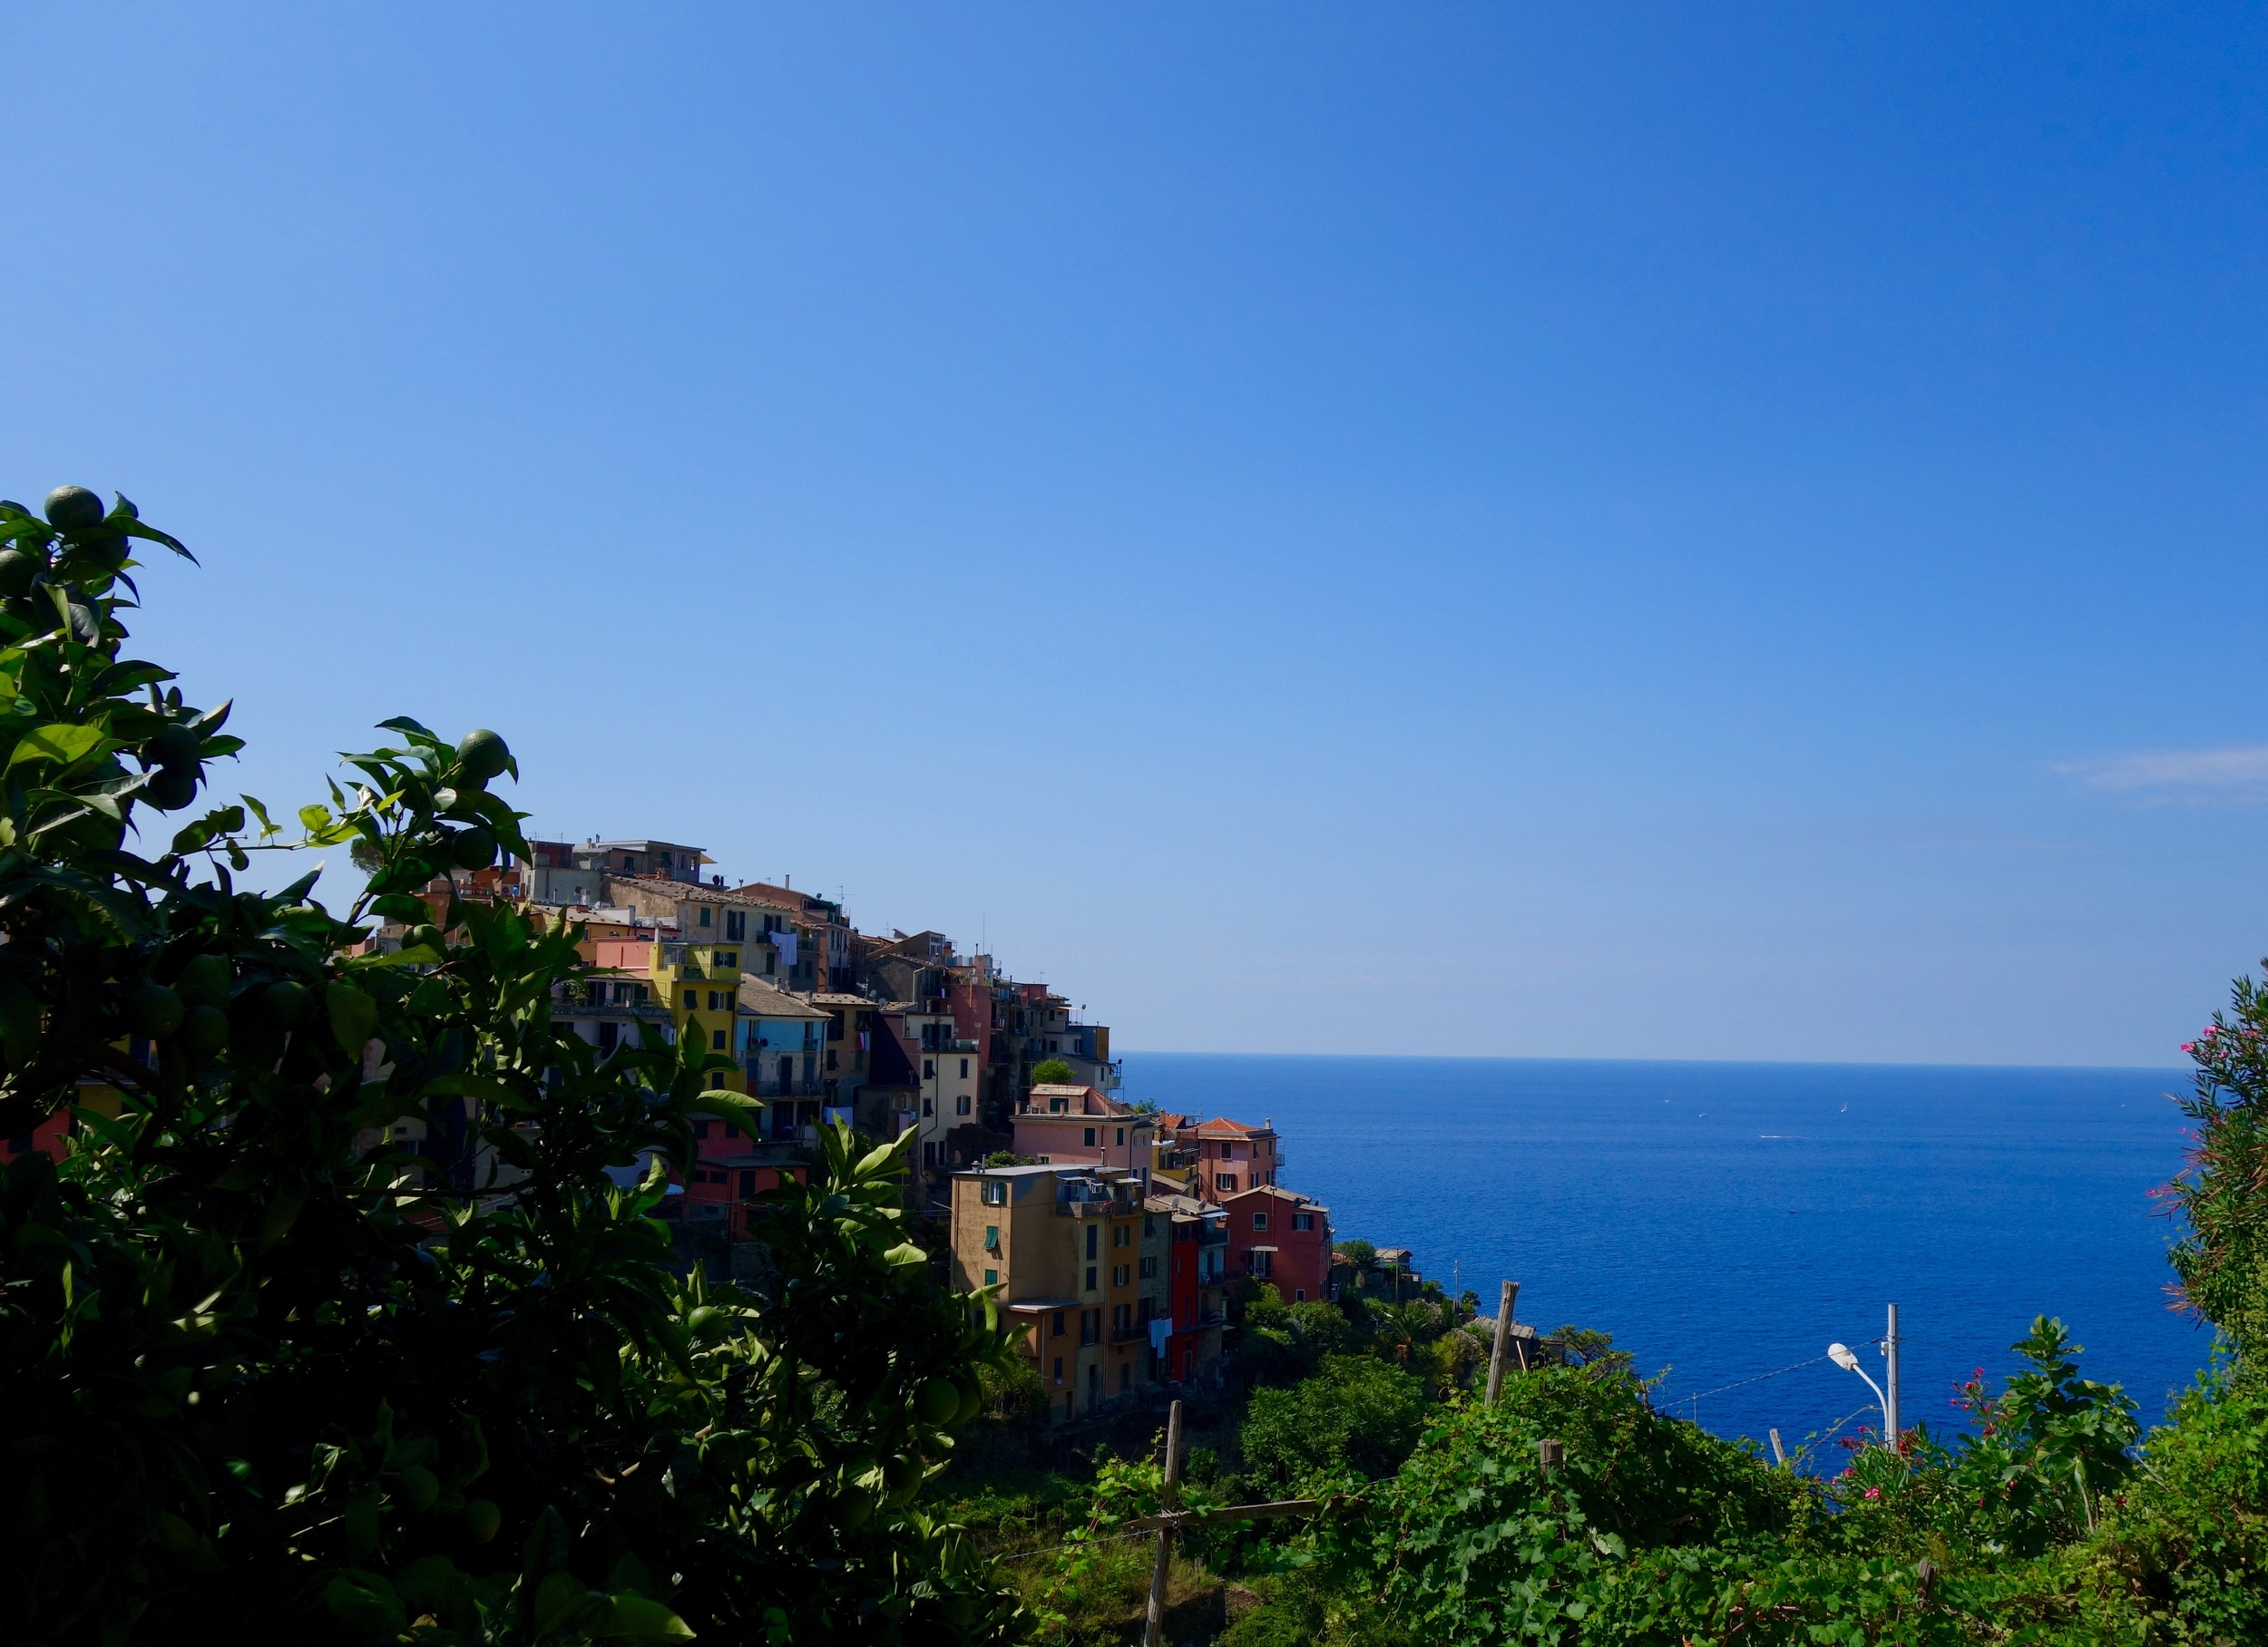 Corniglia is the third town, and has the cutest little houses!!